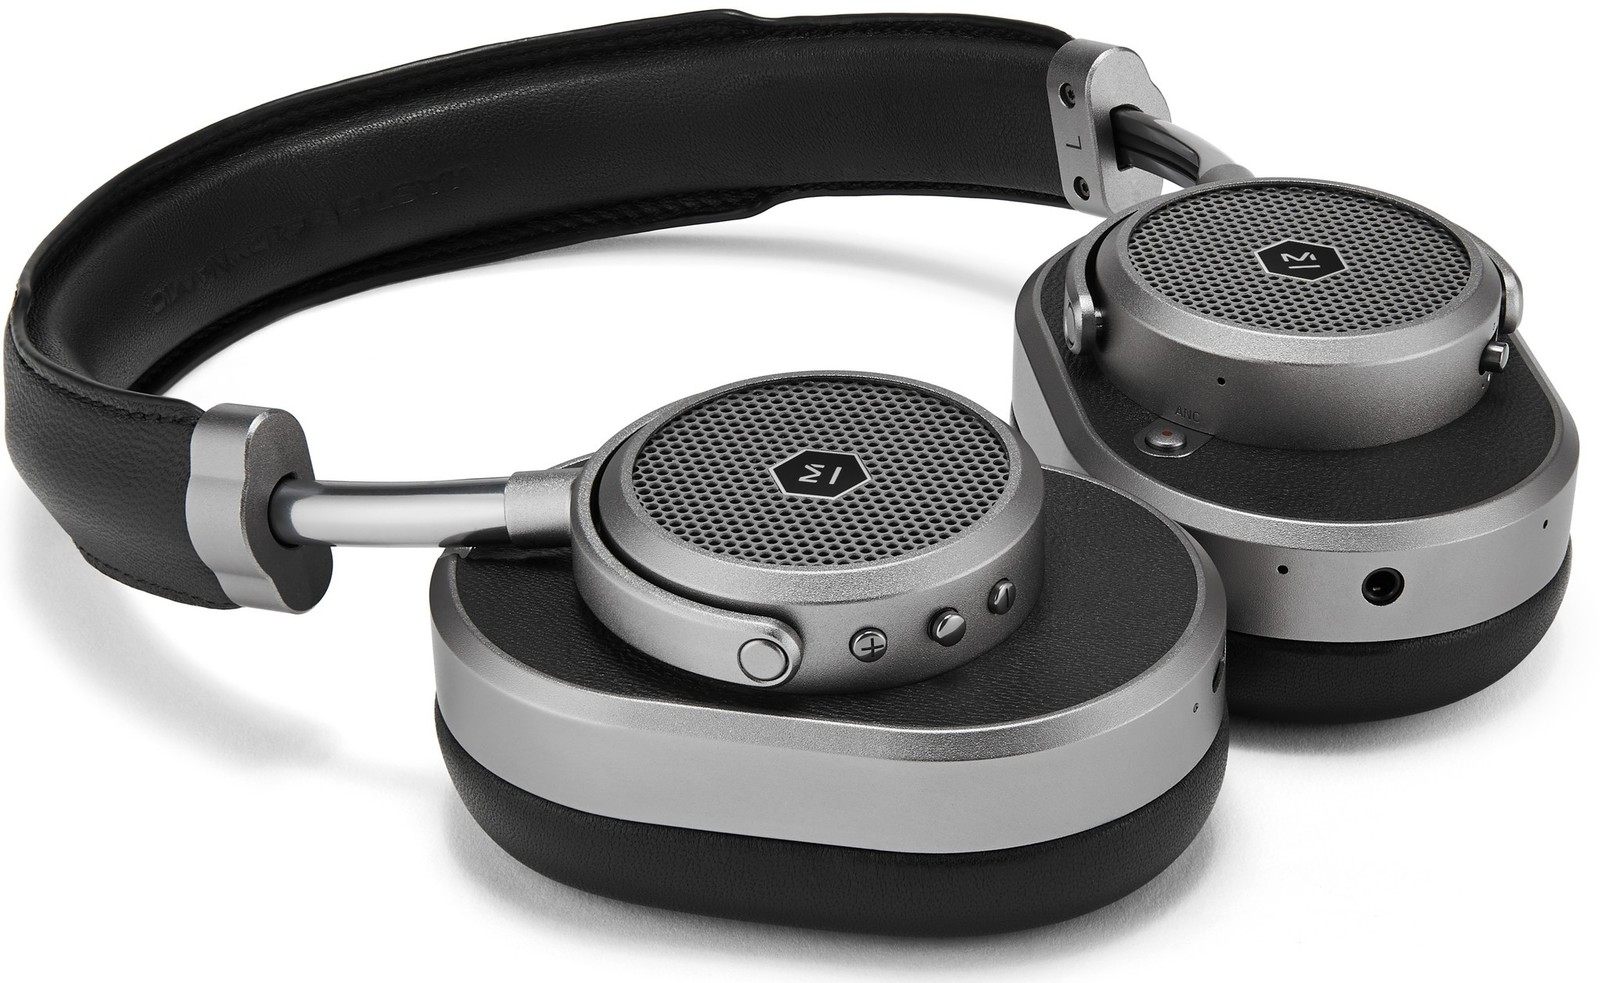 b5ab3ab3e06 However, moving forward perhaps M&D would be wise to change things up and  do more than just change the colors of its headphones. I'm thinking new  metals, ...